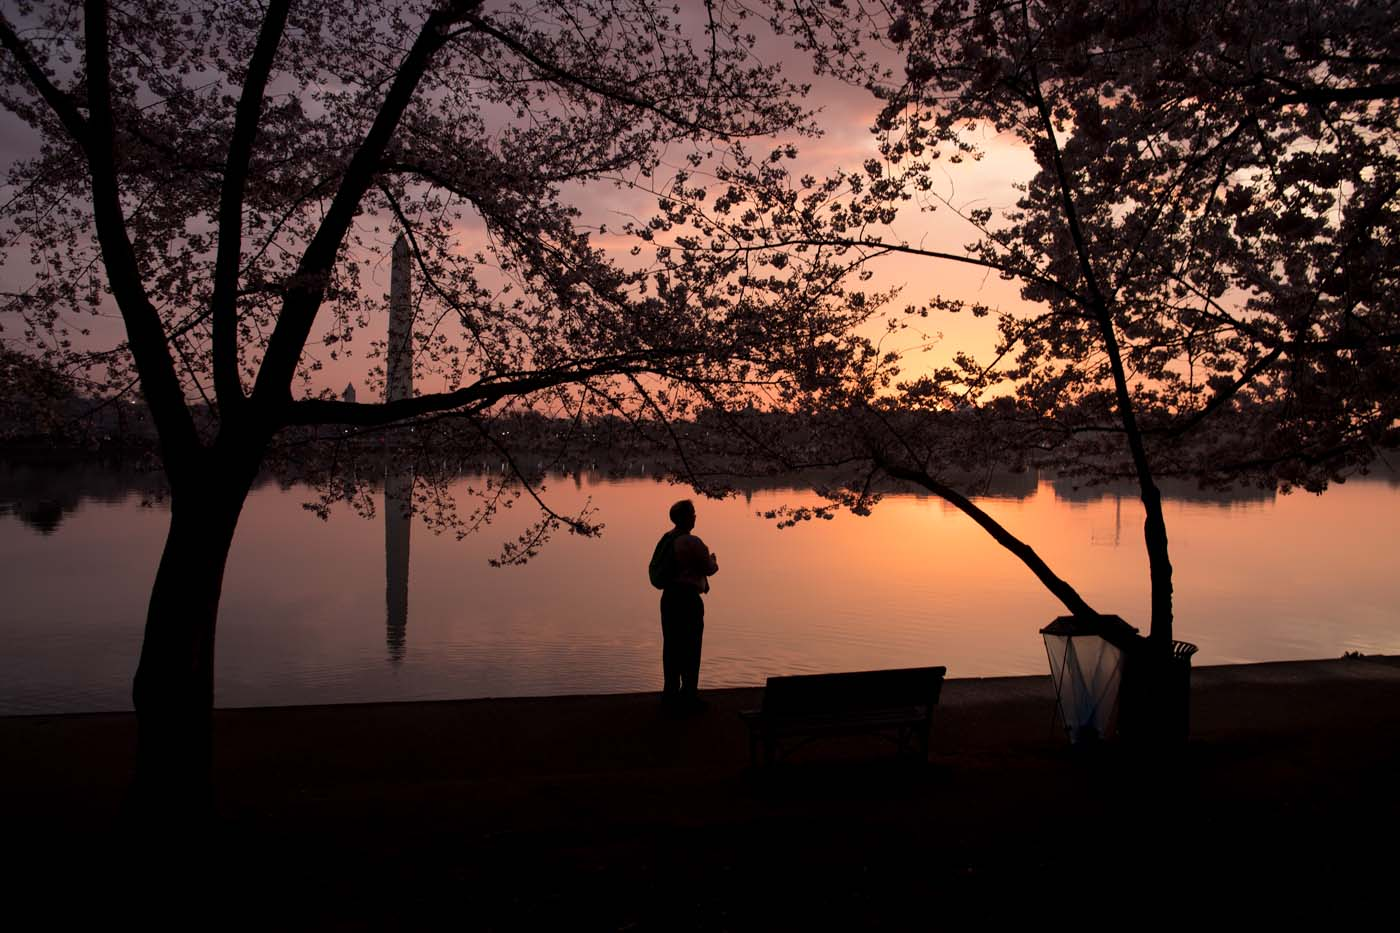 A man photographs the Cherry Blossom trees as they bloom around the Tidal Basin at sunrise in Washington, DC, April 4, 2018. / AFP PHOTO / SAUL LOEB